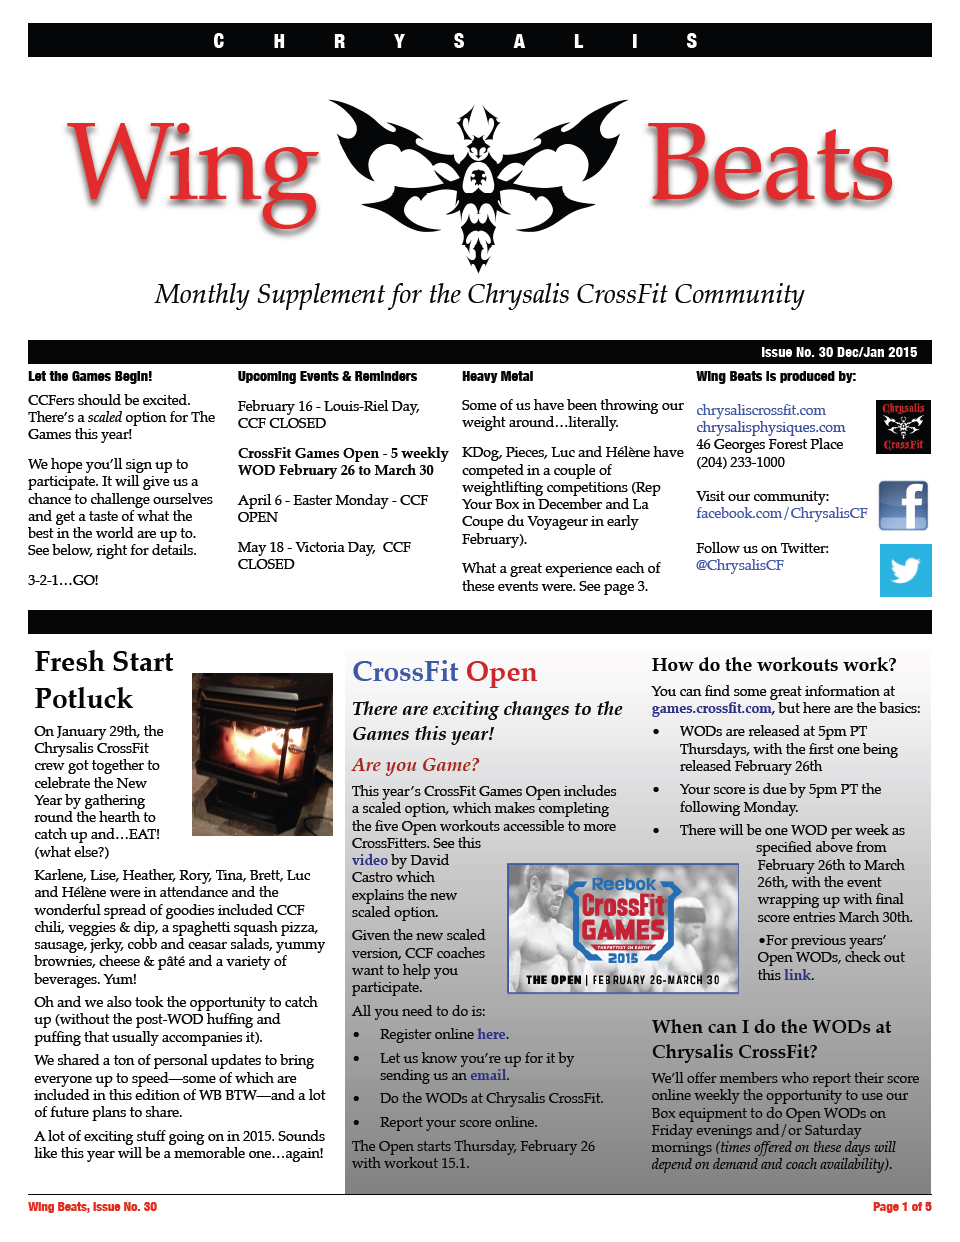 WingBeats Issue #30 - DecJan 2015